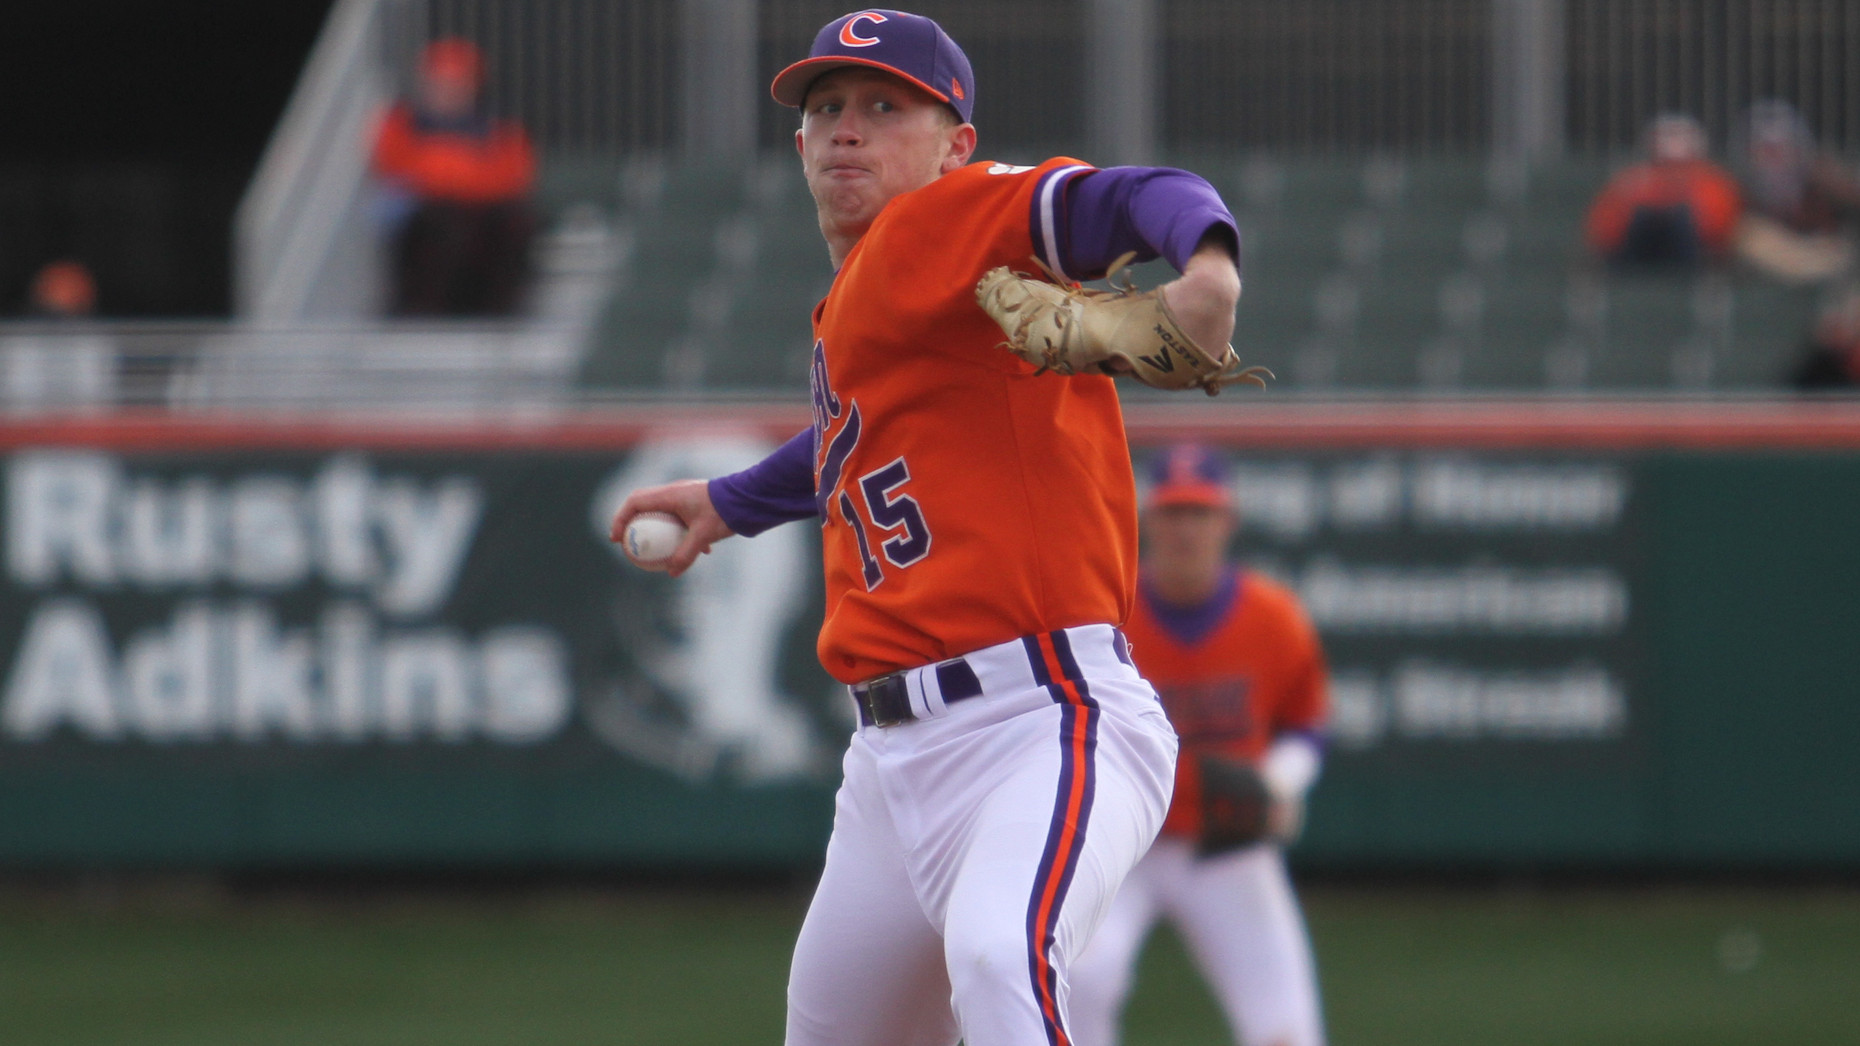 Tigers to Face Western Carolina Tuesday, Presbyterian College Wednesday